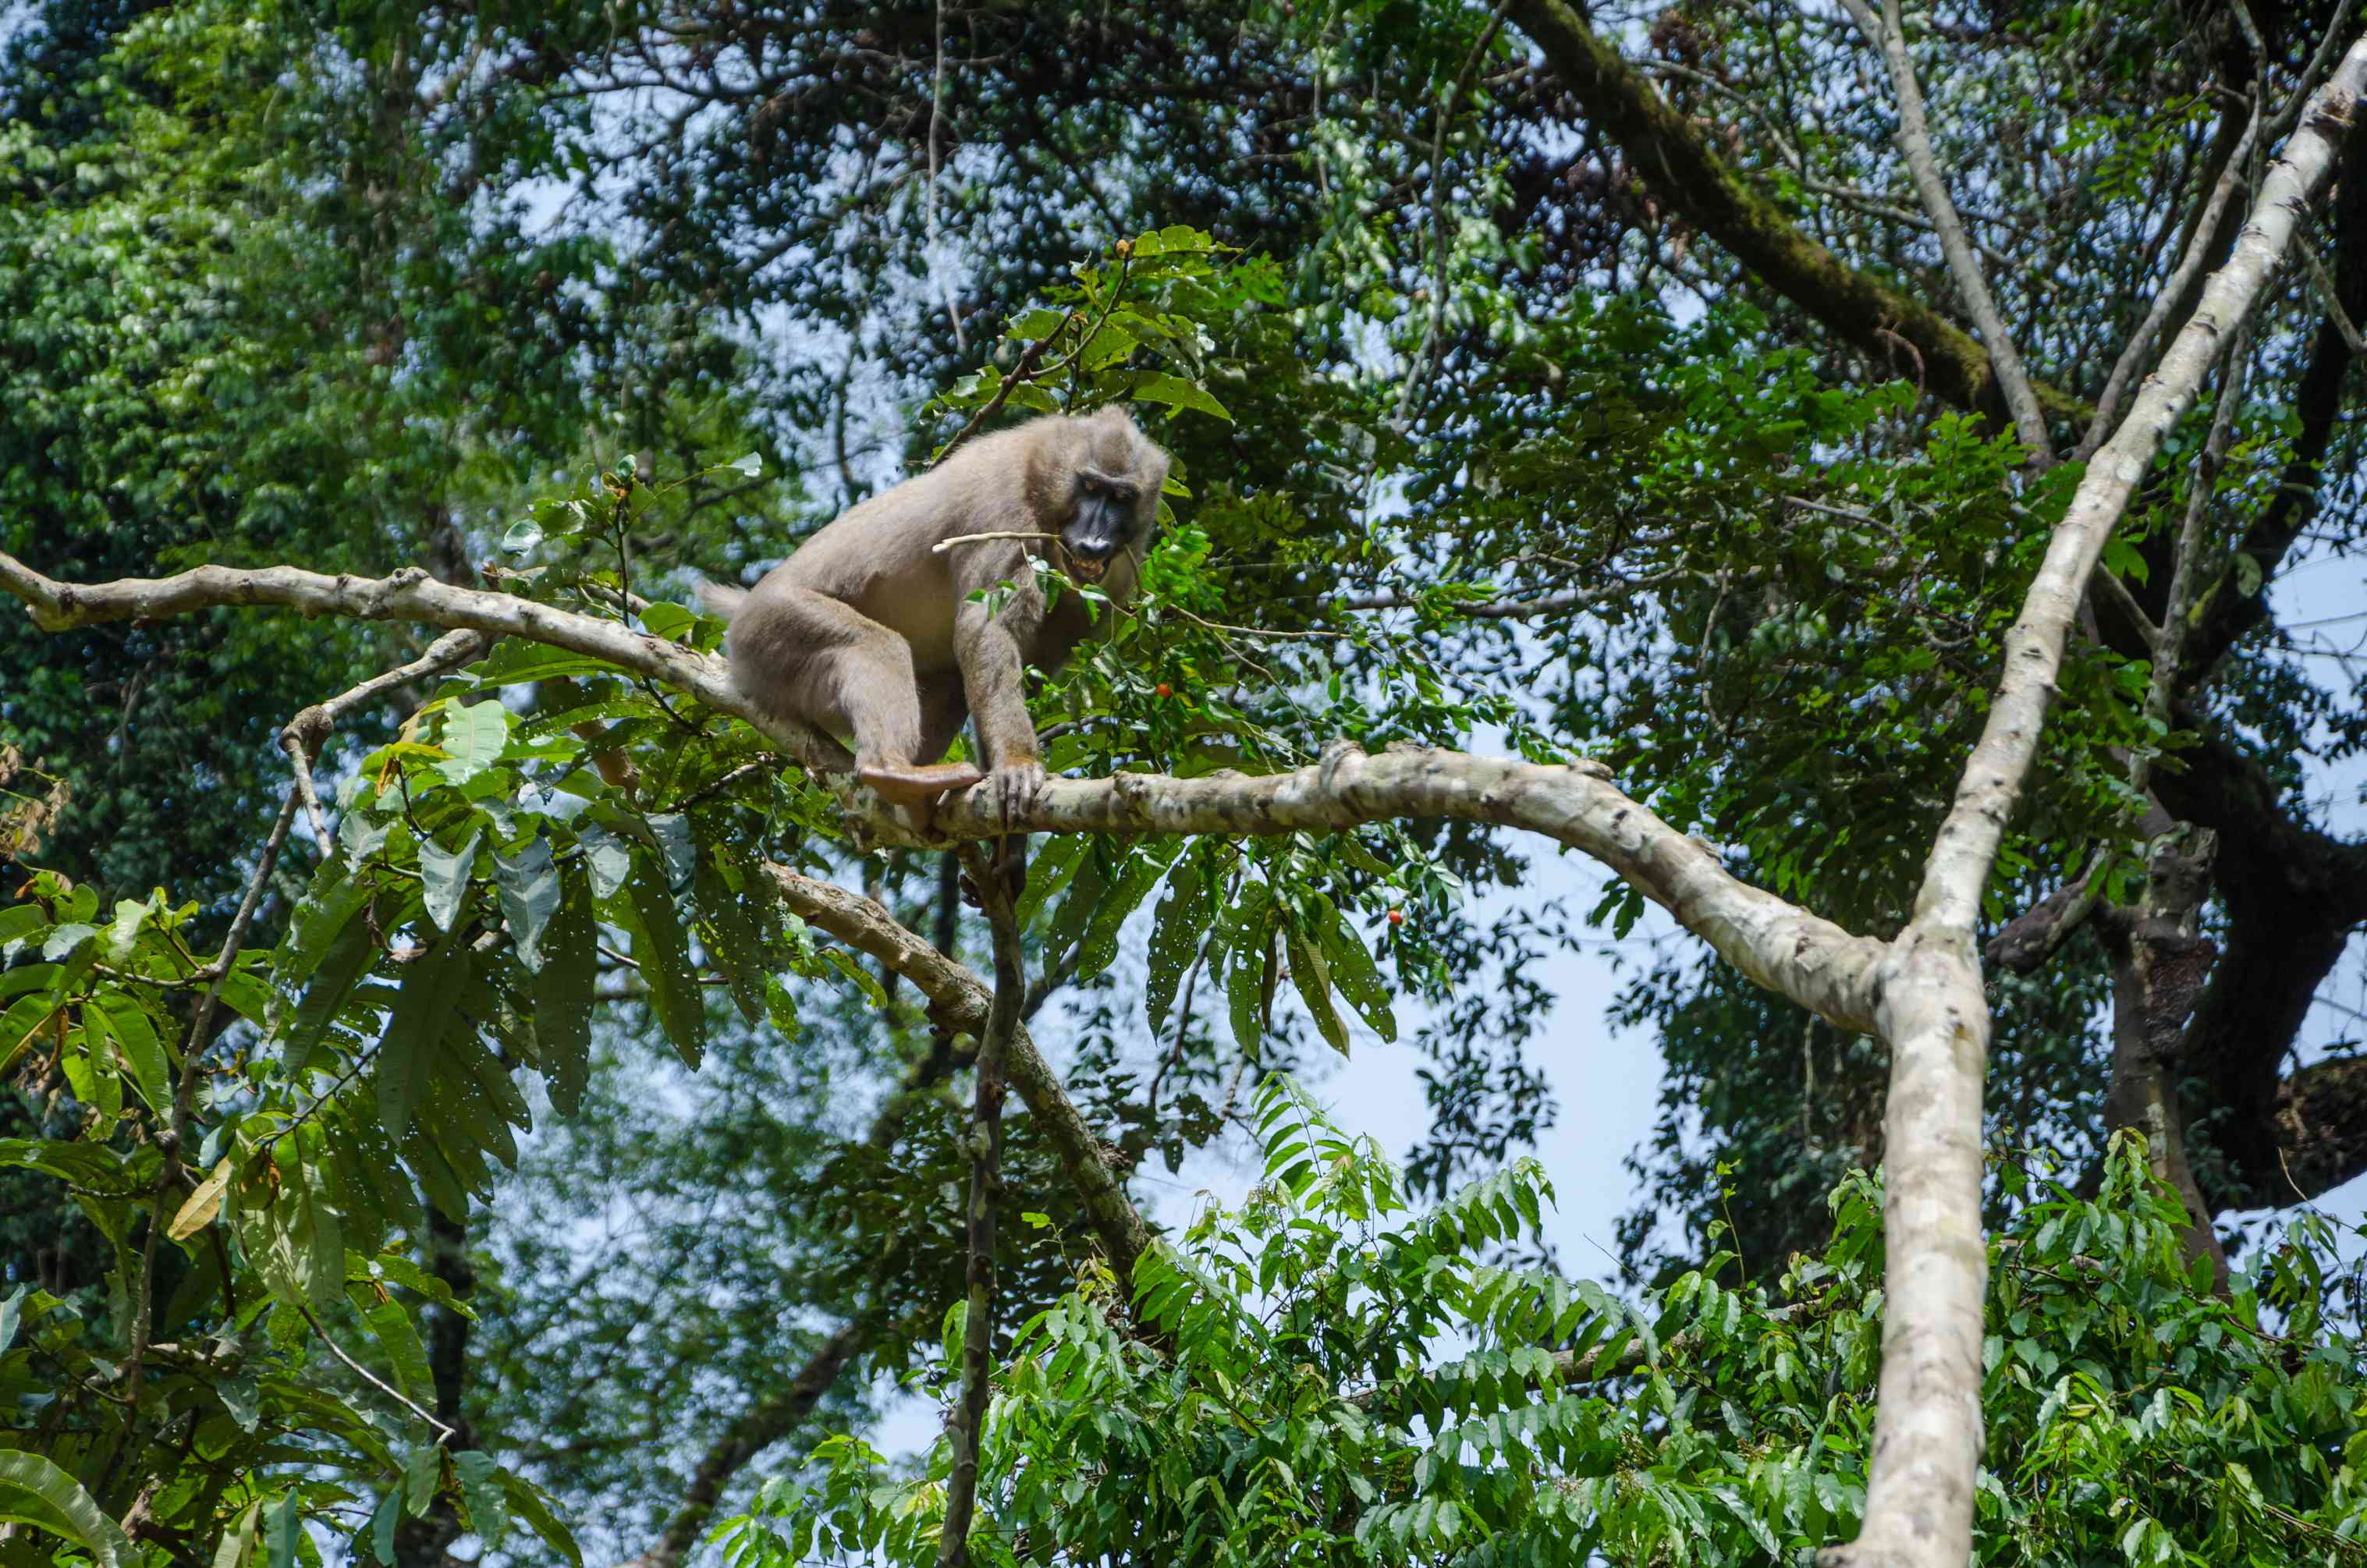 View of a drill monkey in the trees, Nigeria